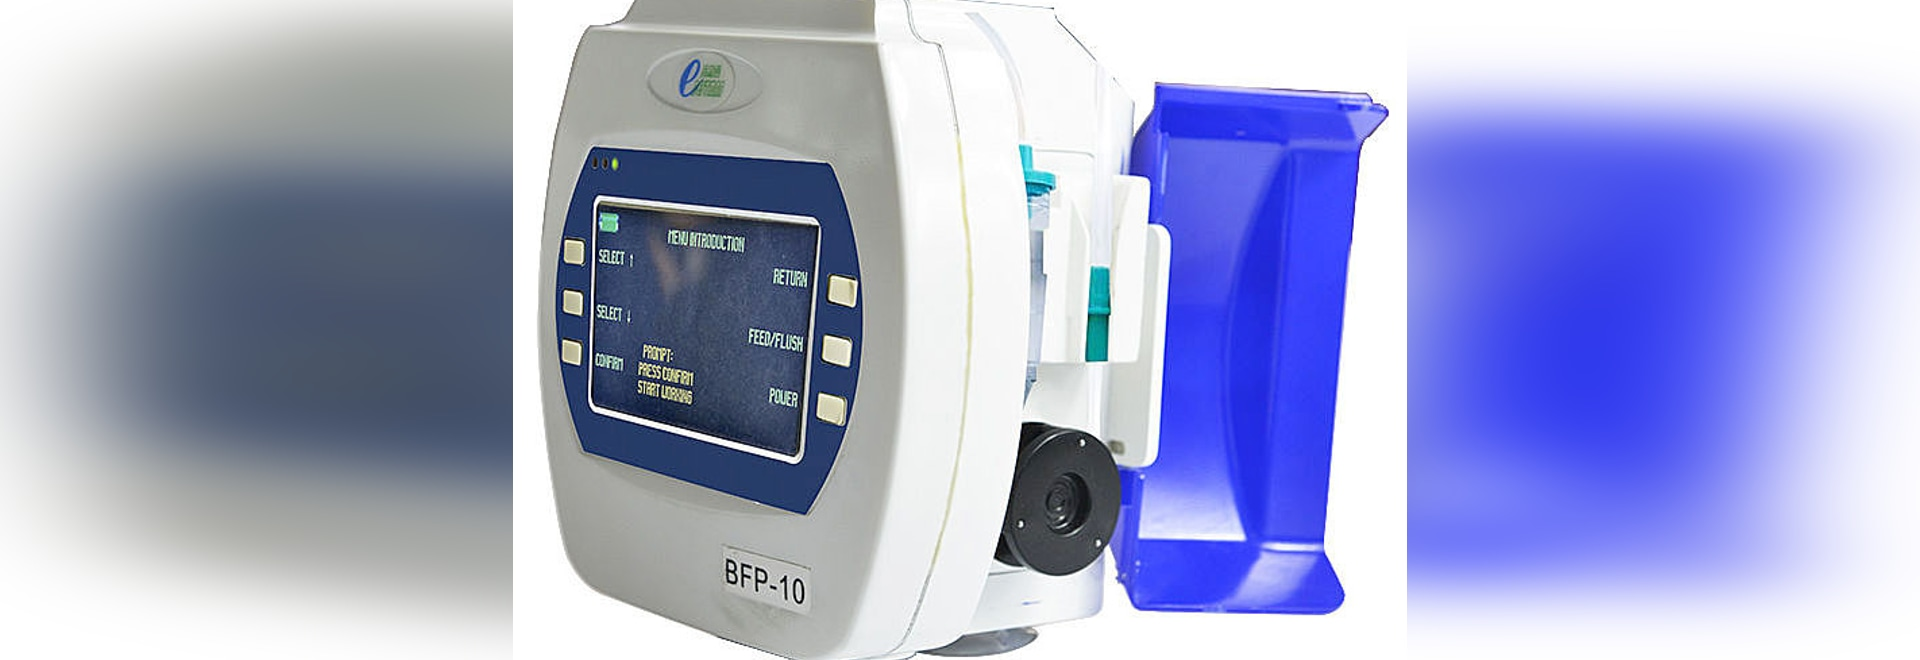 BFP-10 feeding pumps specifications